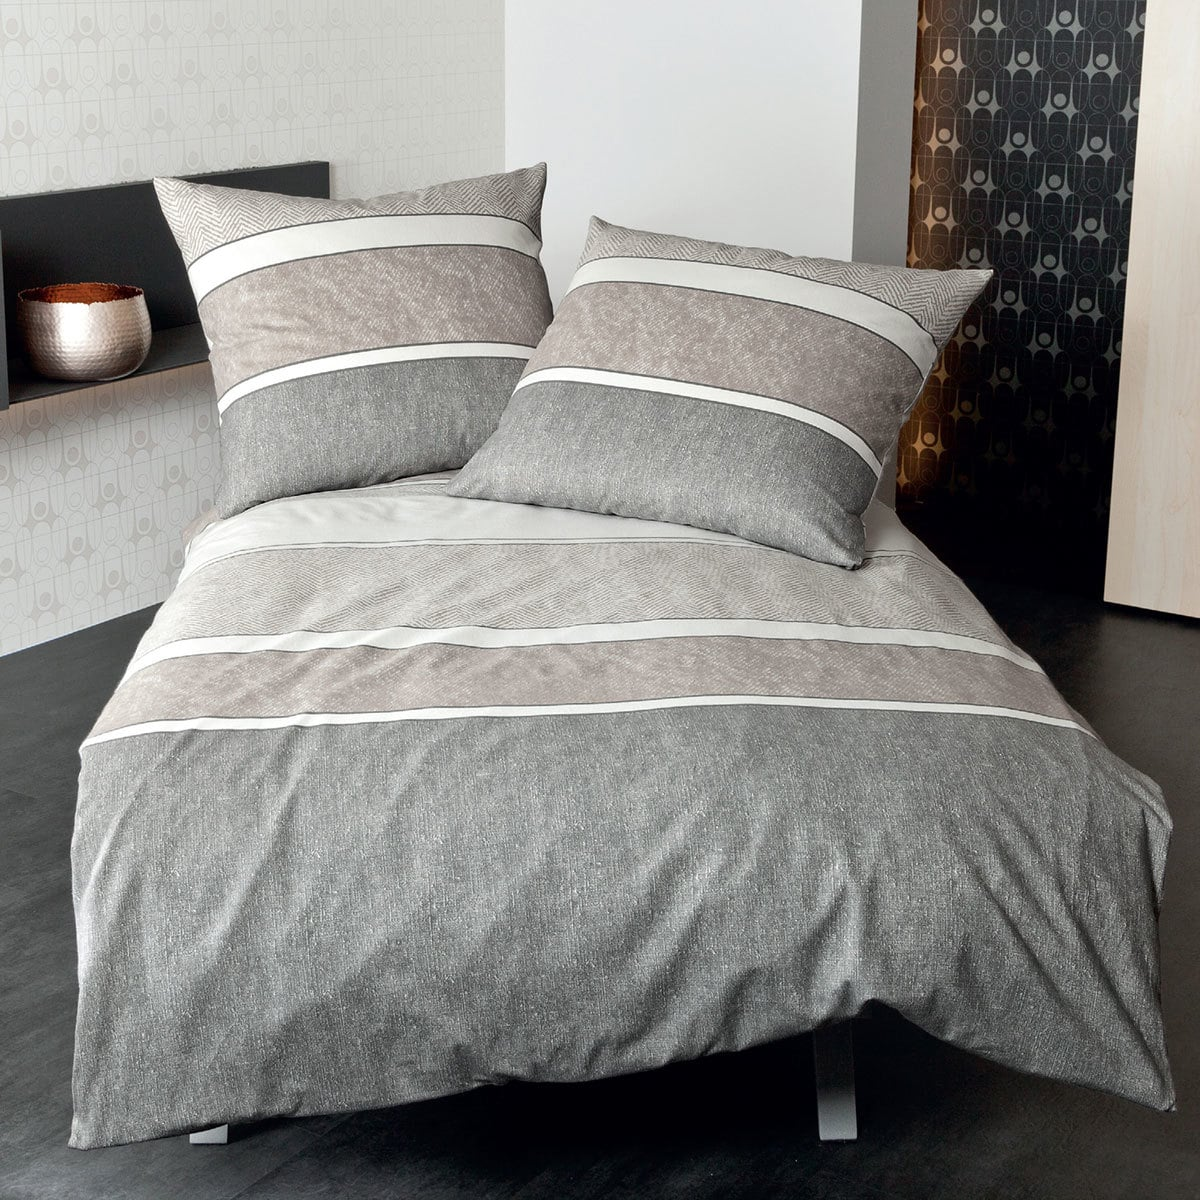 janine biber bettw sche davos 65047 07 sand g nstig online kaufen bei bettwaren shop. Black Bedroom Furniture Sets. Home Design Ideas